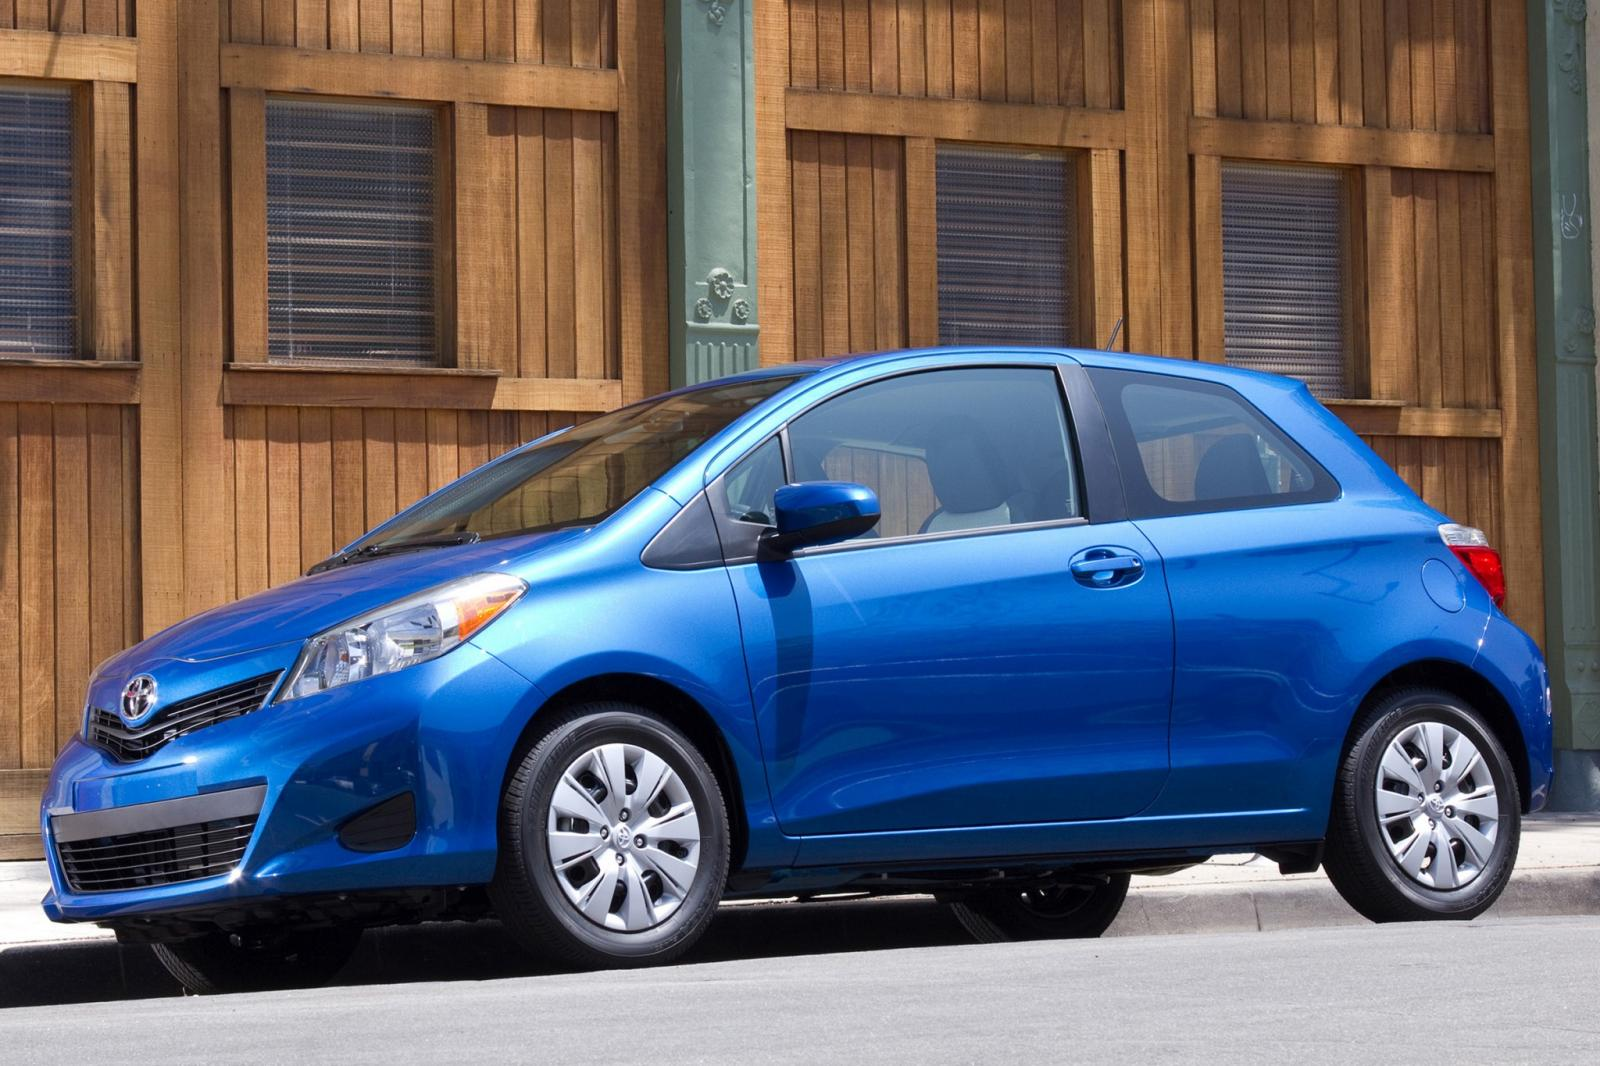 Le Meilleur 2014 Toyota Yaris Information And Photos Zombiedrive Ce Mois Ci